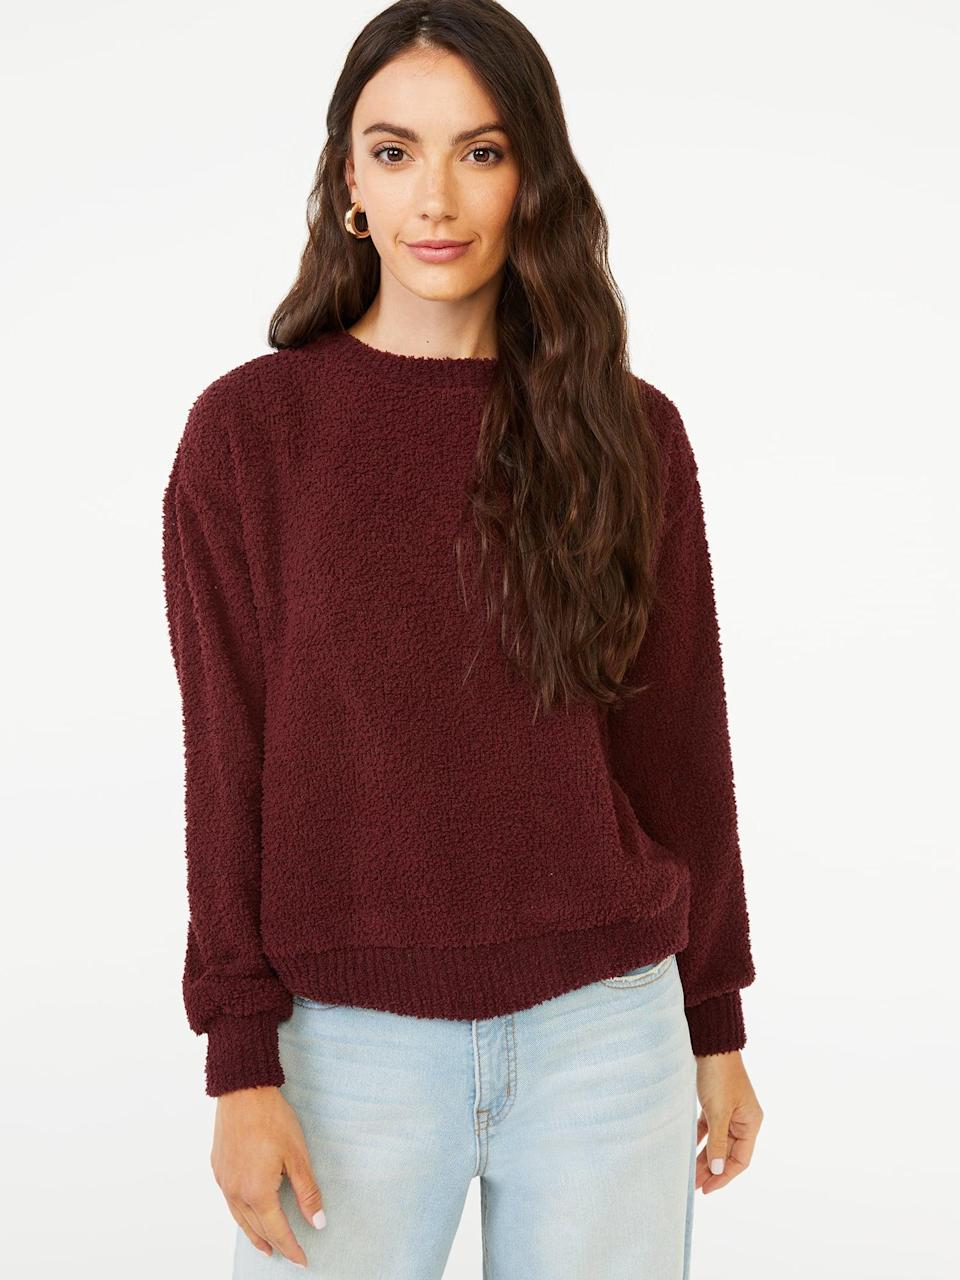 <p>Cozy like a blanket, the <span>Scoop Women's Plush Sweatshirt</span> ($24) is just as good for days spent at home as it is for brunch with friends.</p>